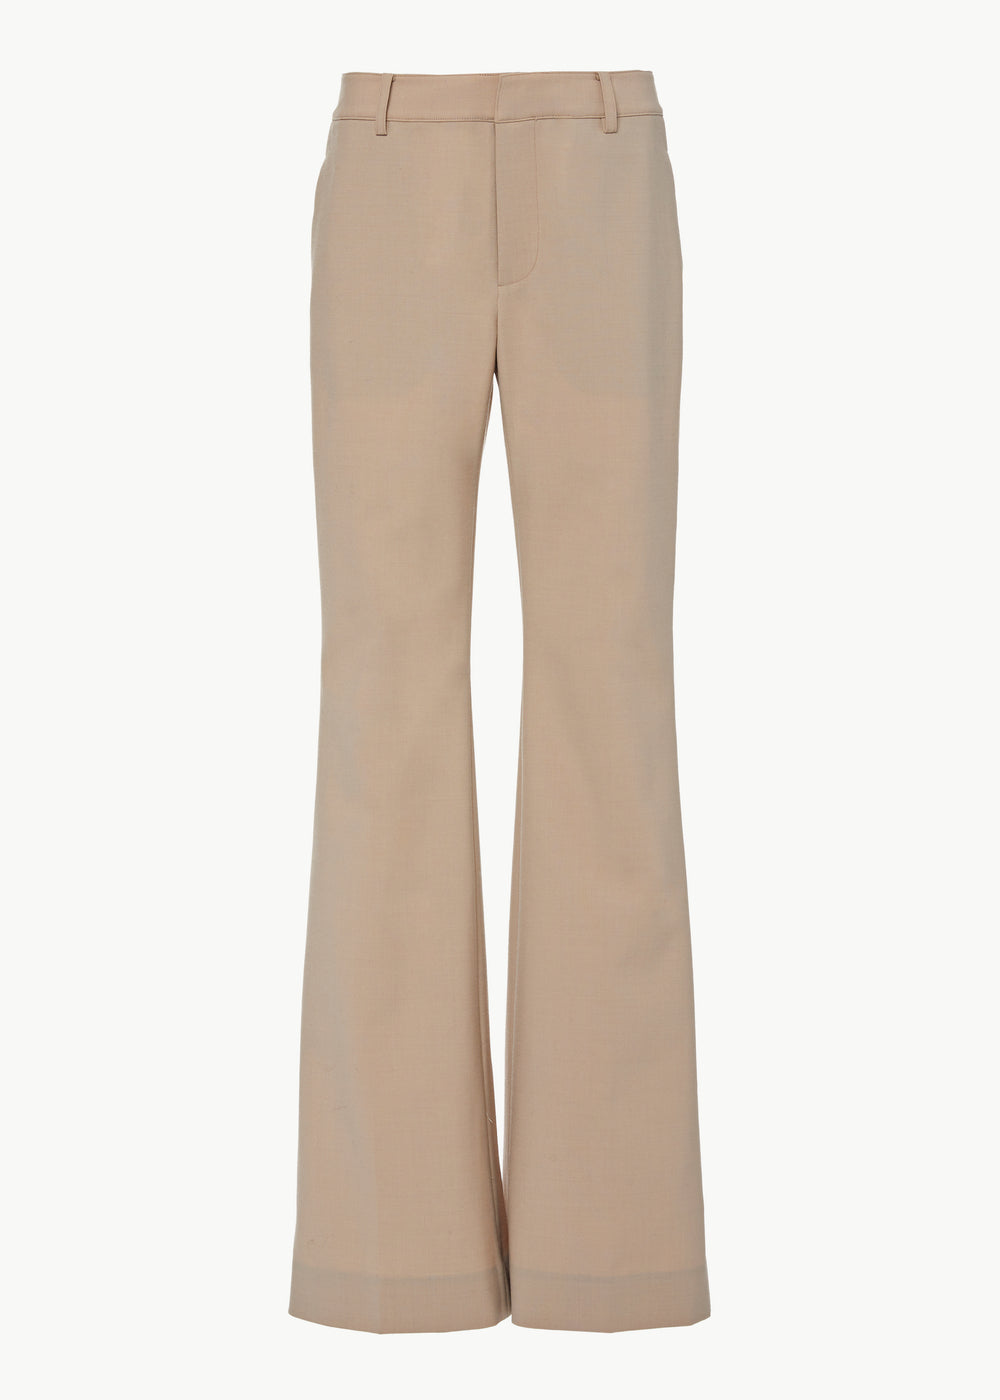 Flare Leg Trouser in Stretch Wool - Beige - CO